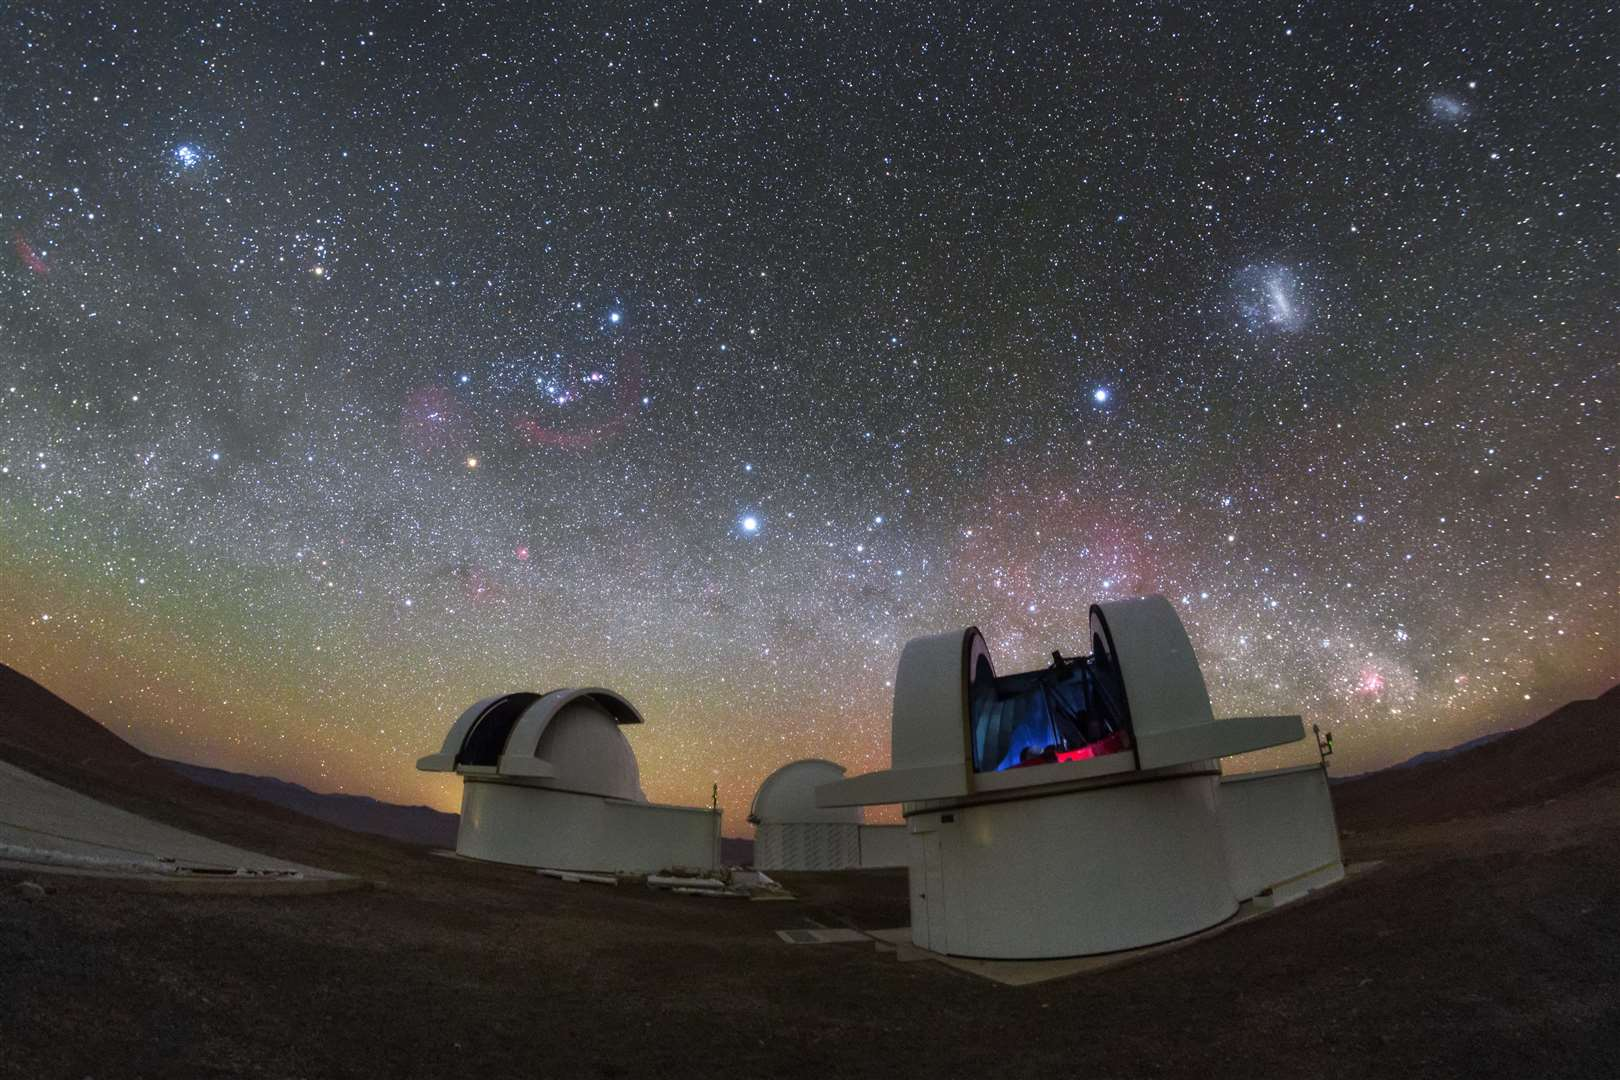 The telescopes of the SPECULOOS Southern Observatory gaze out into the stunning night sky over the Atacama Desert, Chile. Image: ESO/ P. Horálek (6365282)